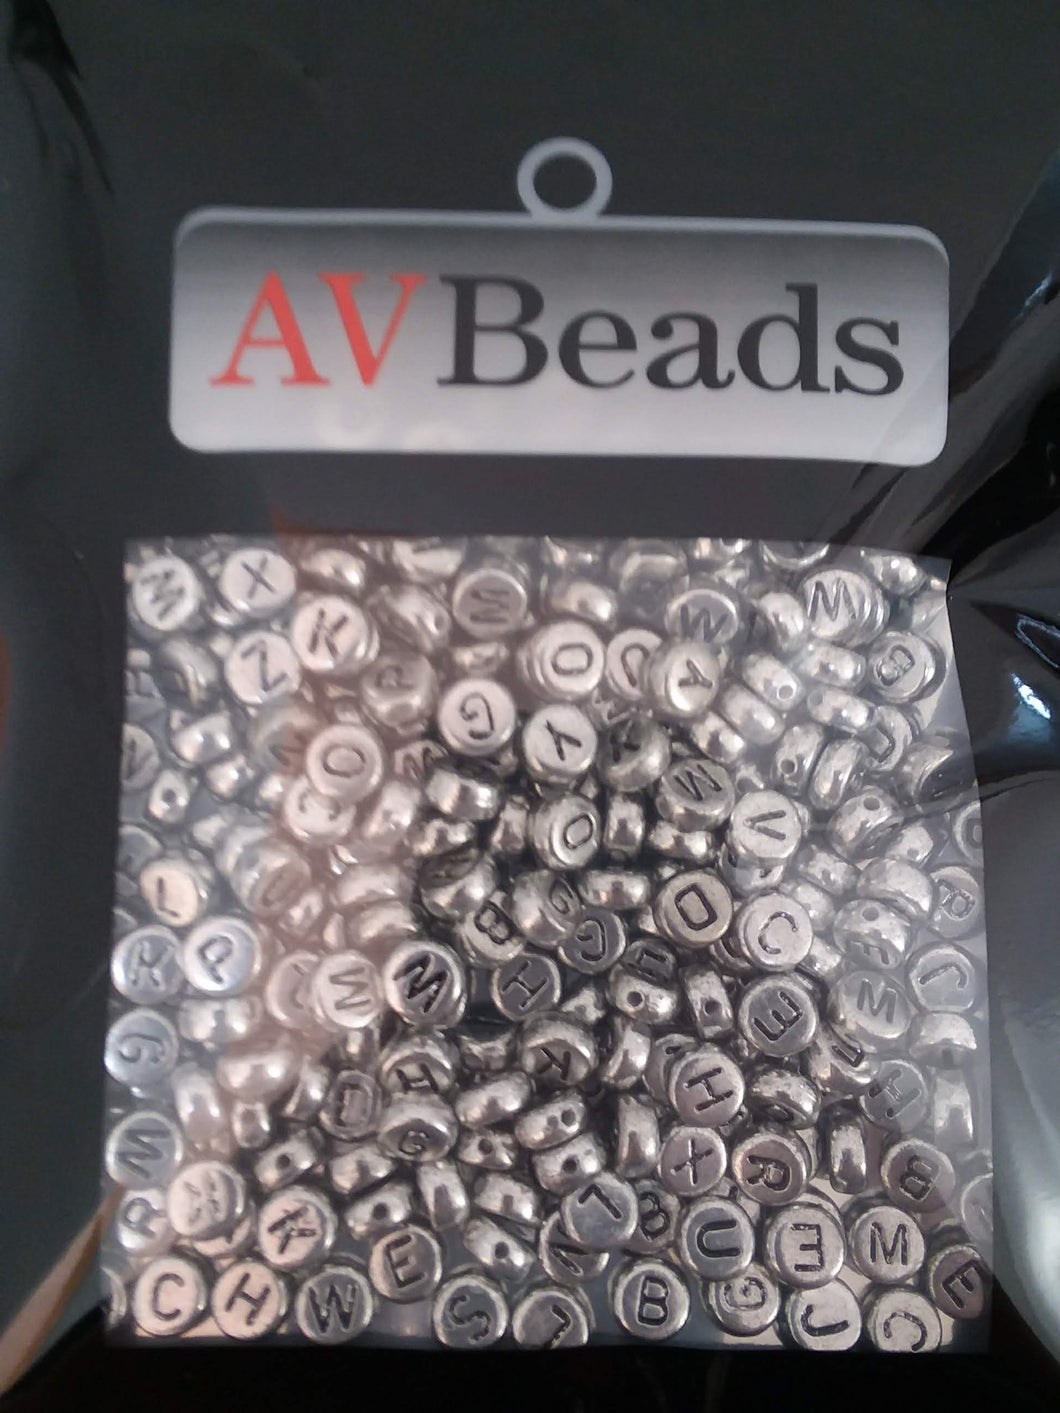 AVBeads Acrylic Beads Spacer Alphabet Letter Beads 7mm Silver 2oz approx. 400pcs